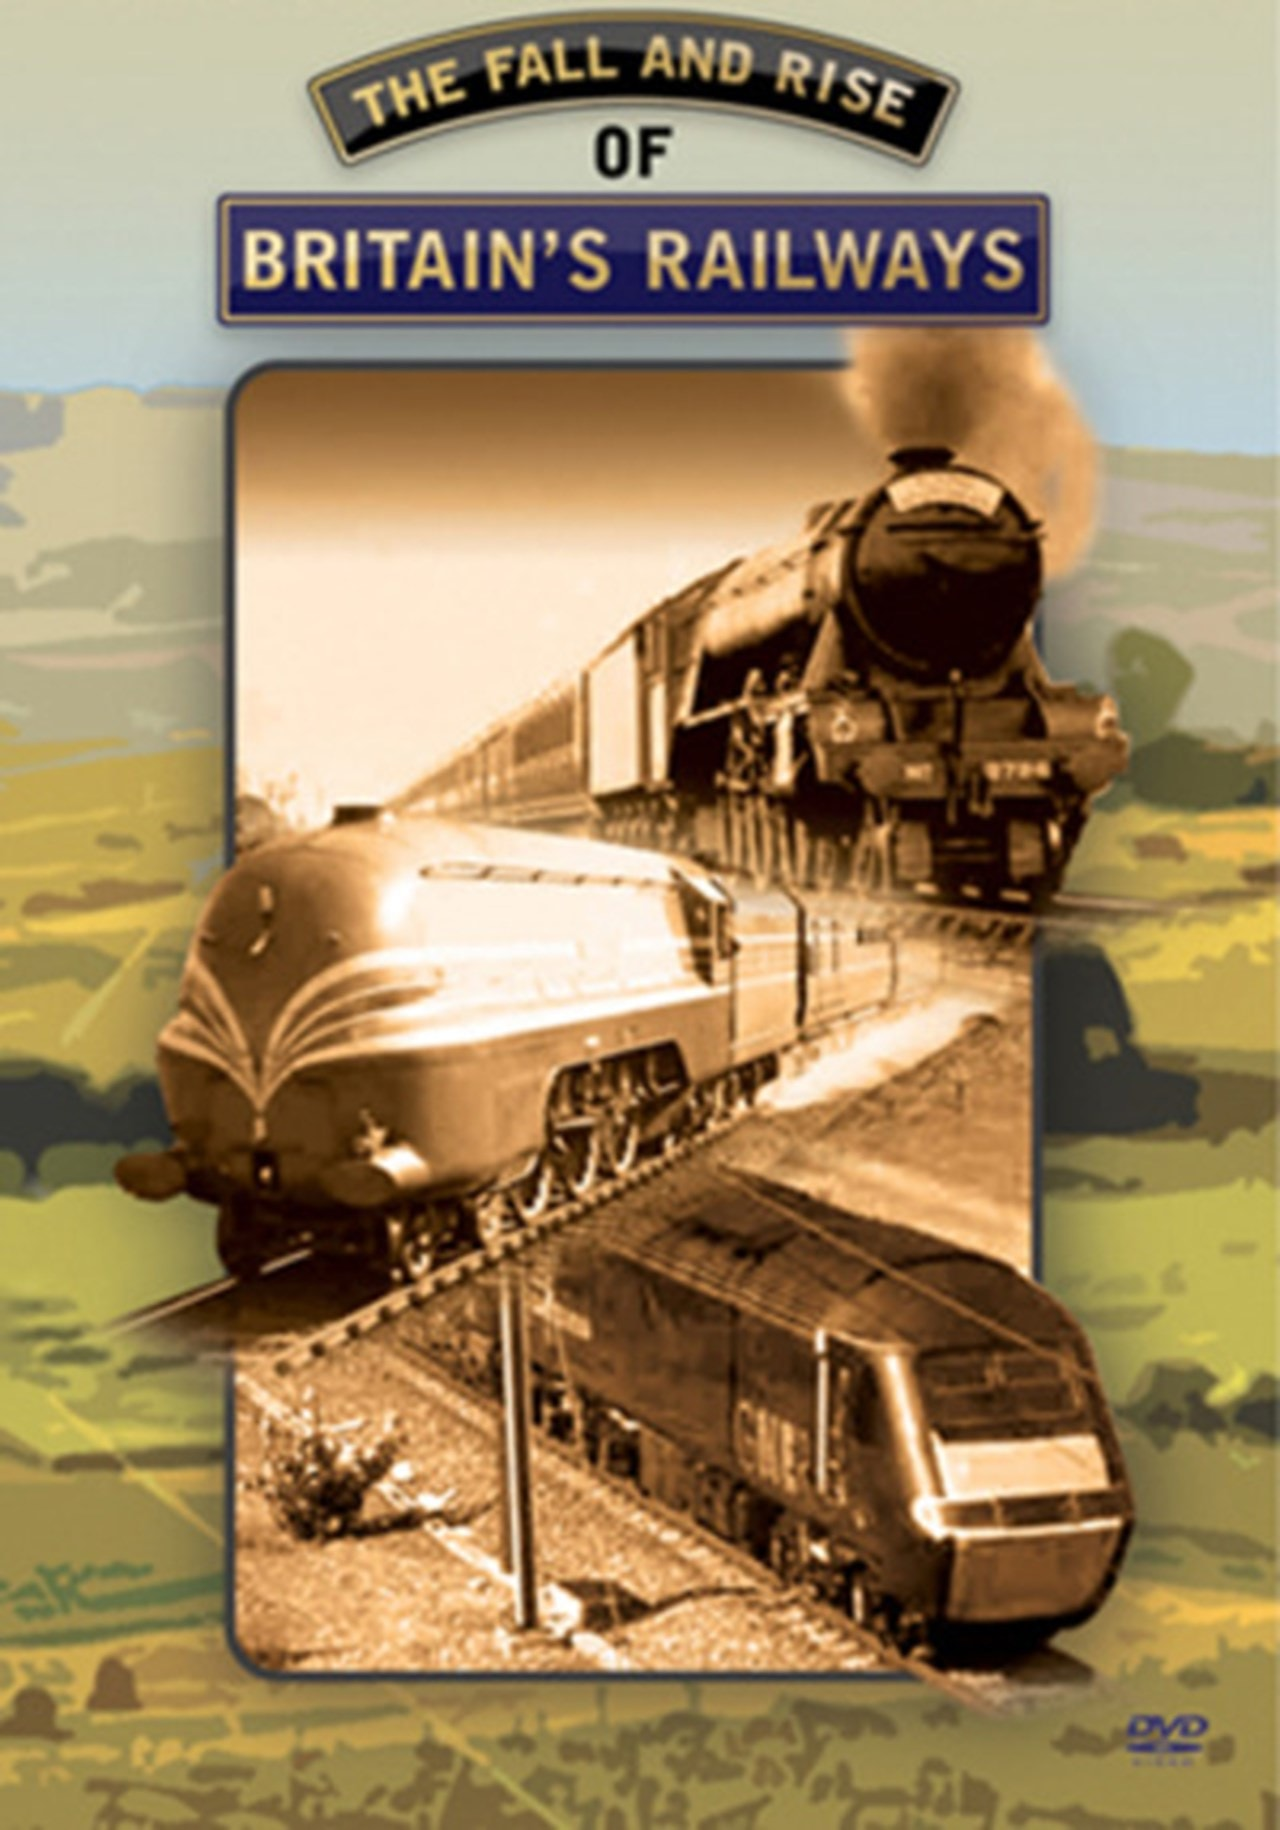 The Fall and Rise of Britain's Railways - 1